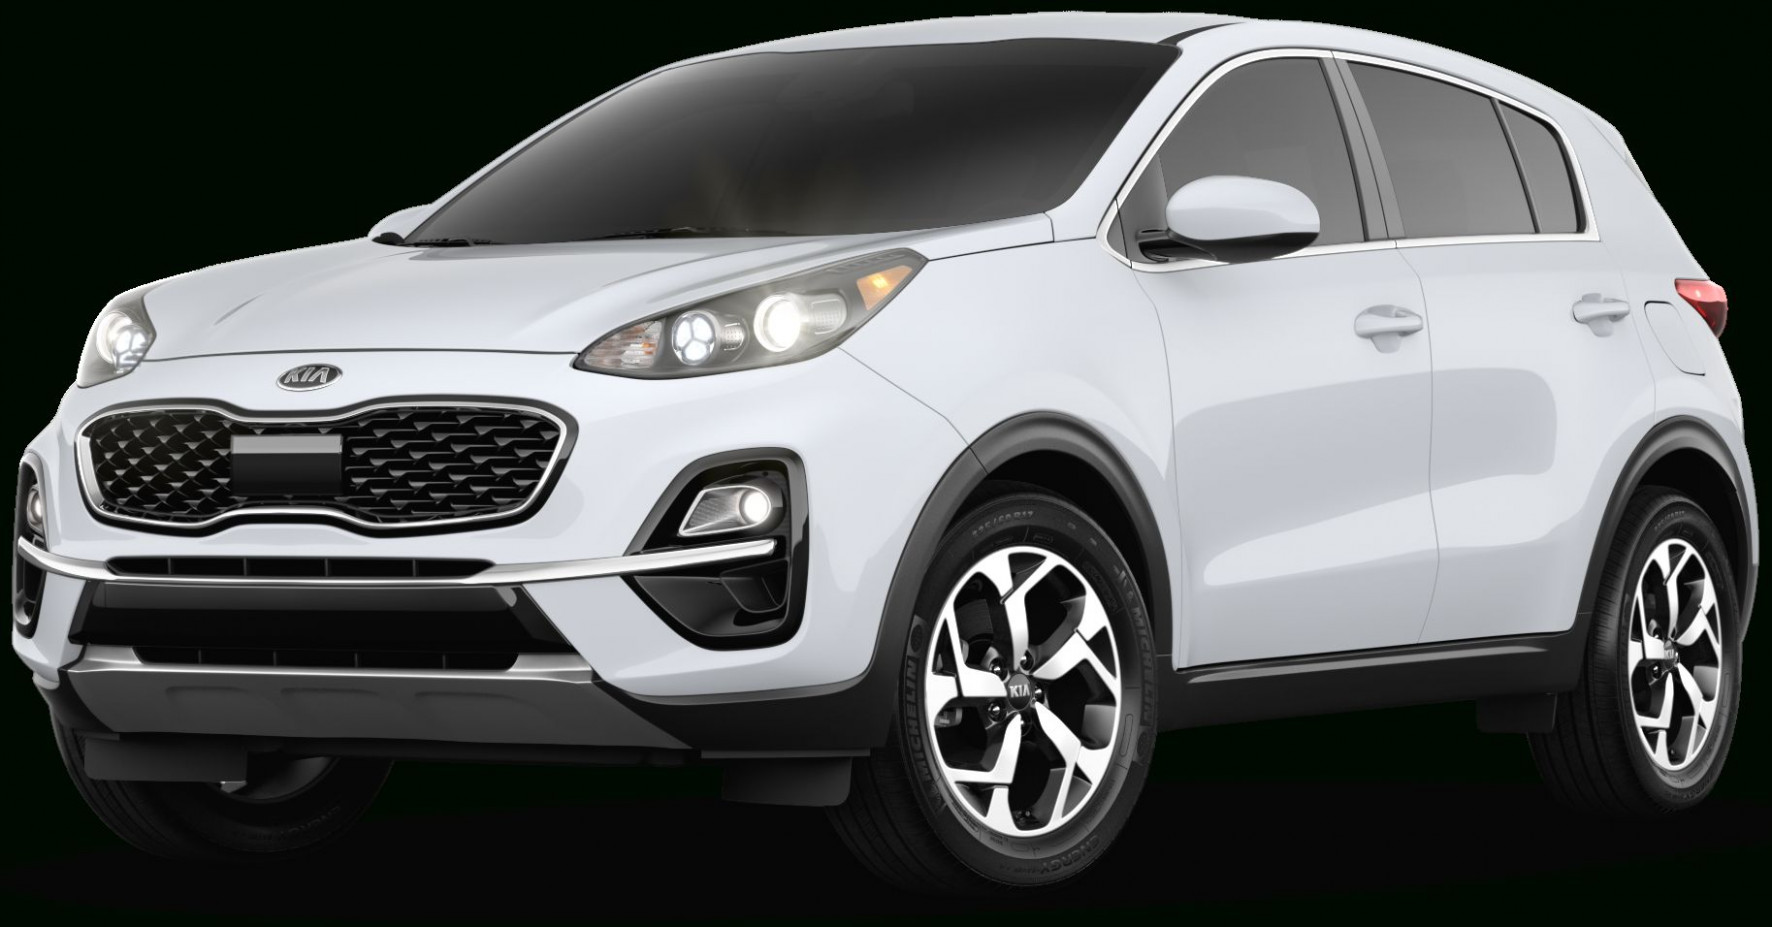 Kia Sportage 11 White Interior in 11 | Kia accessories, Kia ...